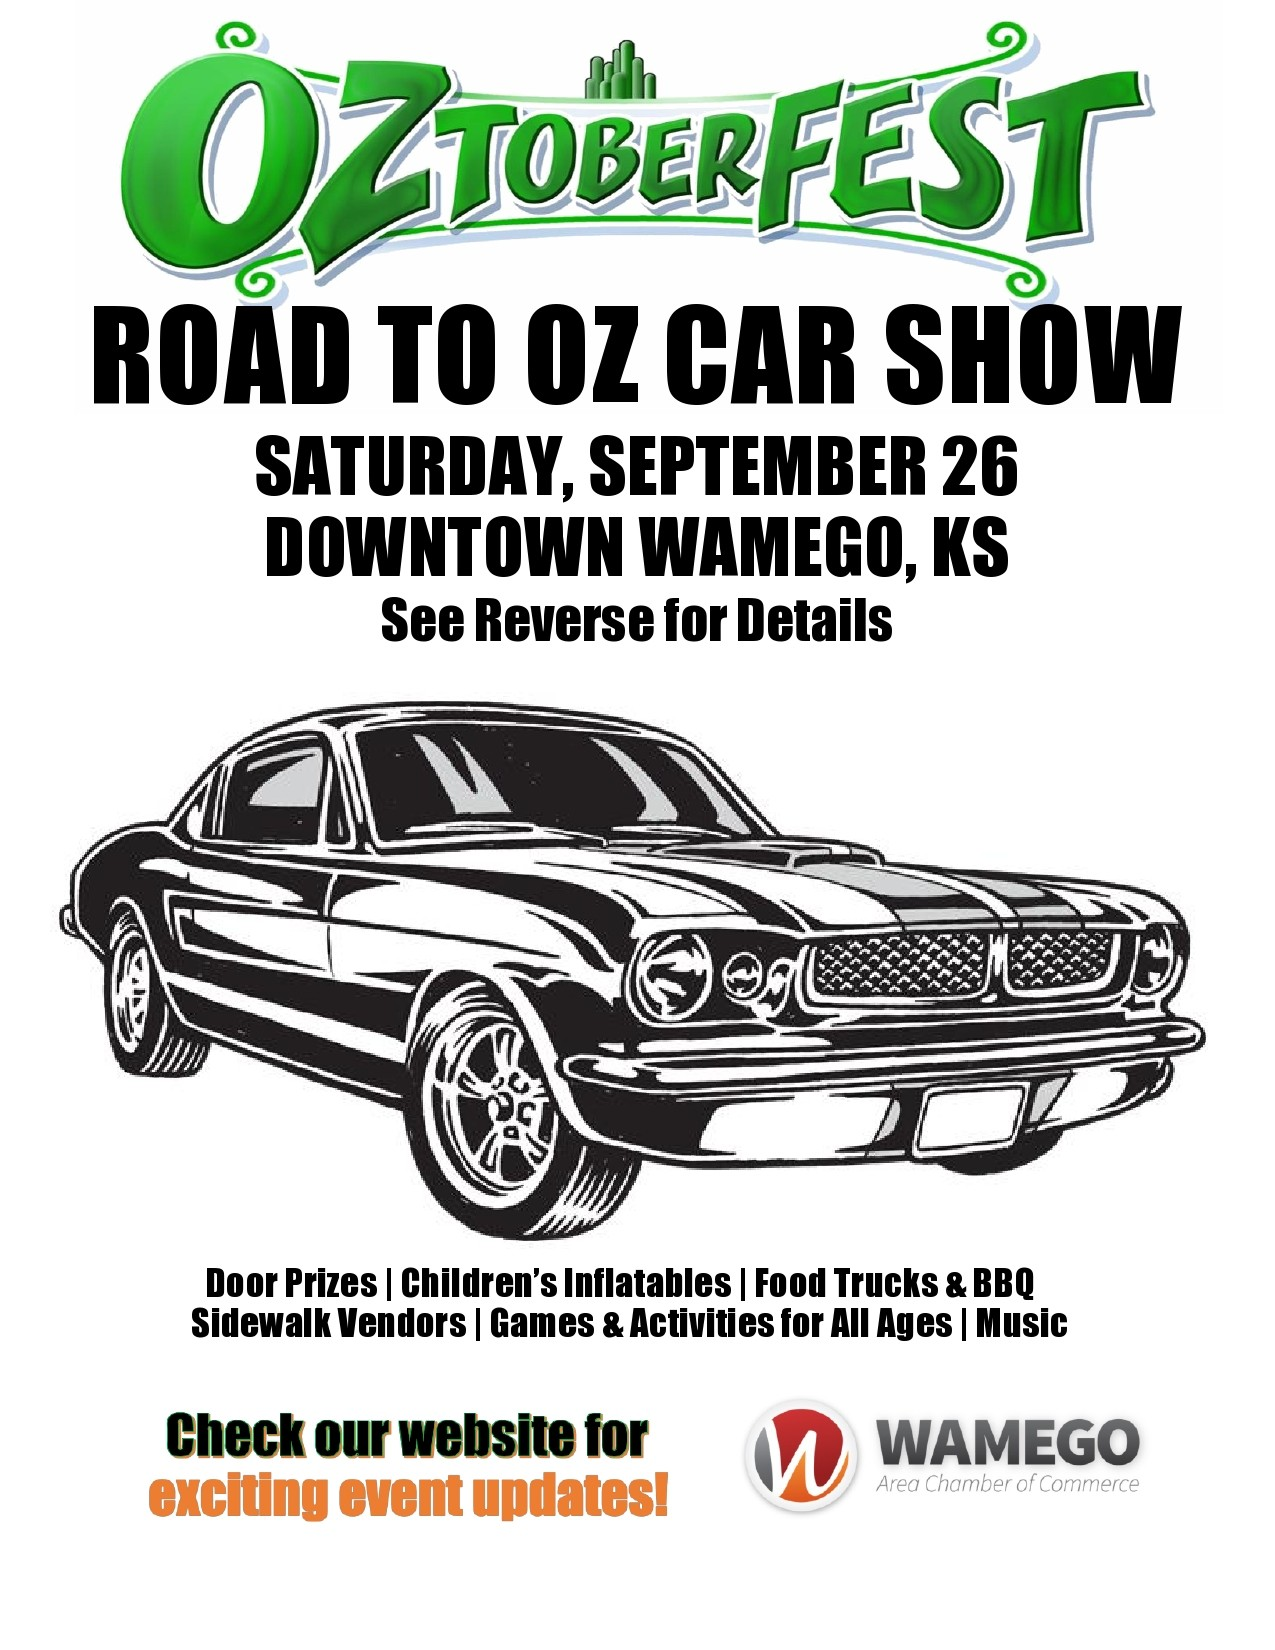 Free car show flyer 45